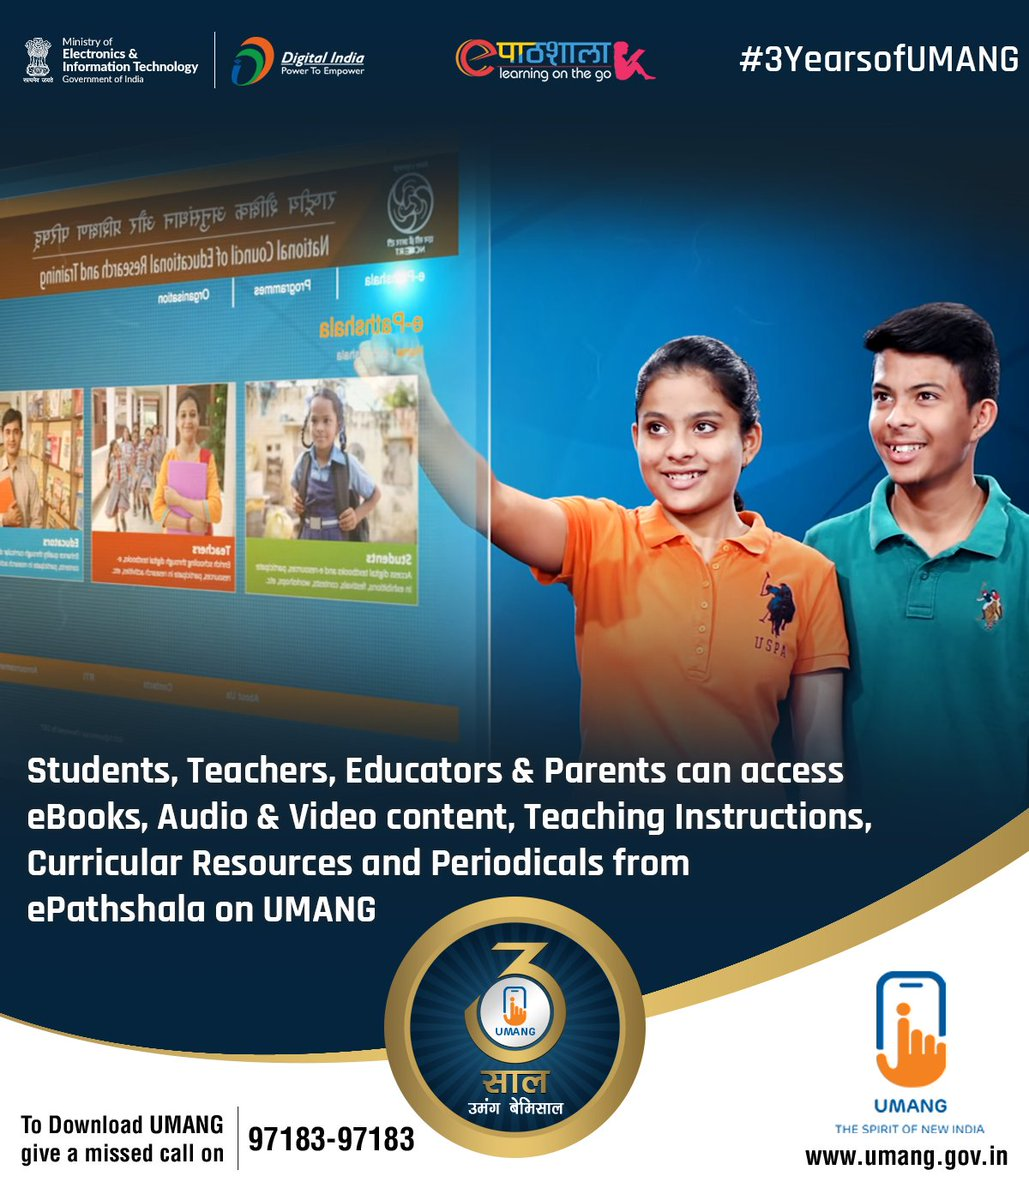 The Digital Learning Platform #ePathshala on #UMANG is easing the lives of students, teachers, educators and parents all across India! Now they can access study materials in multiple languages at their own convenience.   #3yearsofUMANG